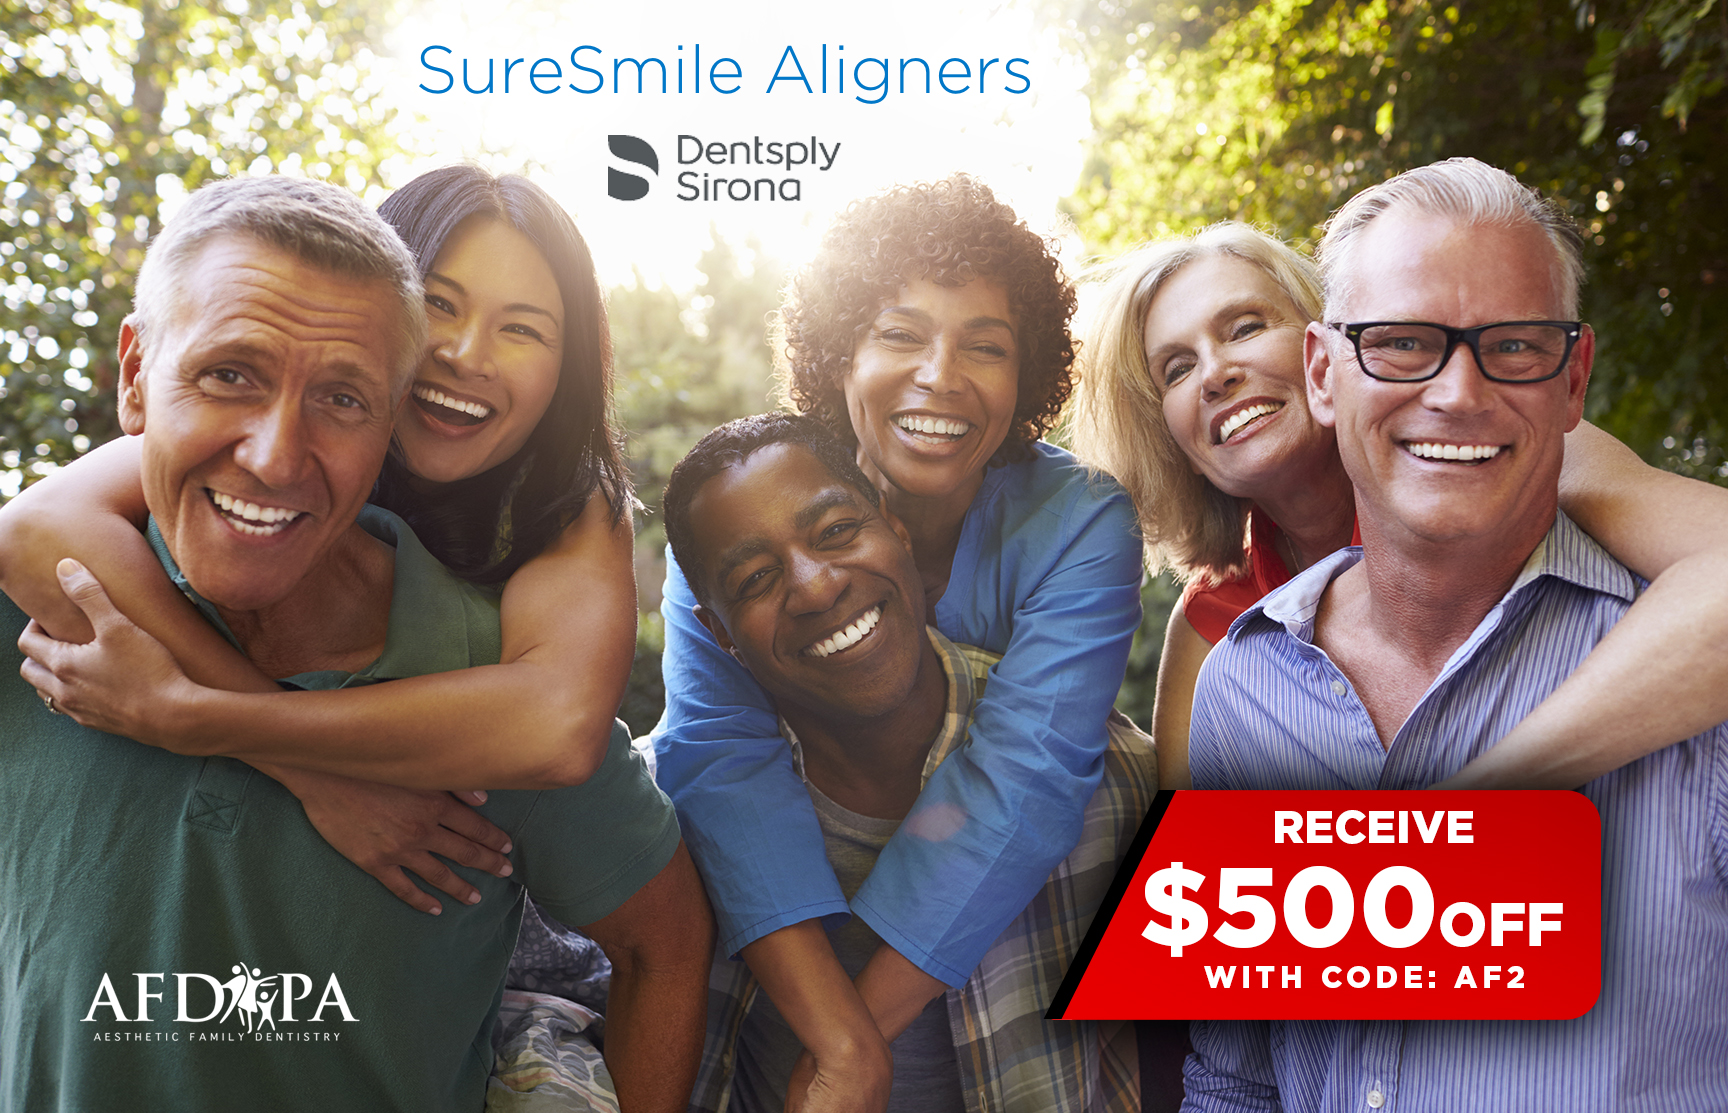 SureSmile Aligner – The Clear way to your ideal smile